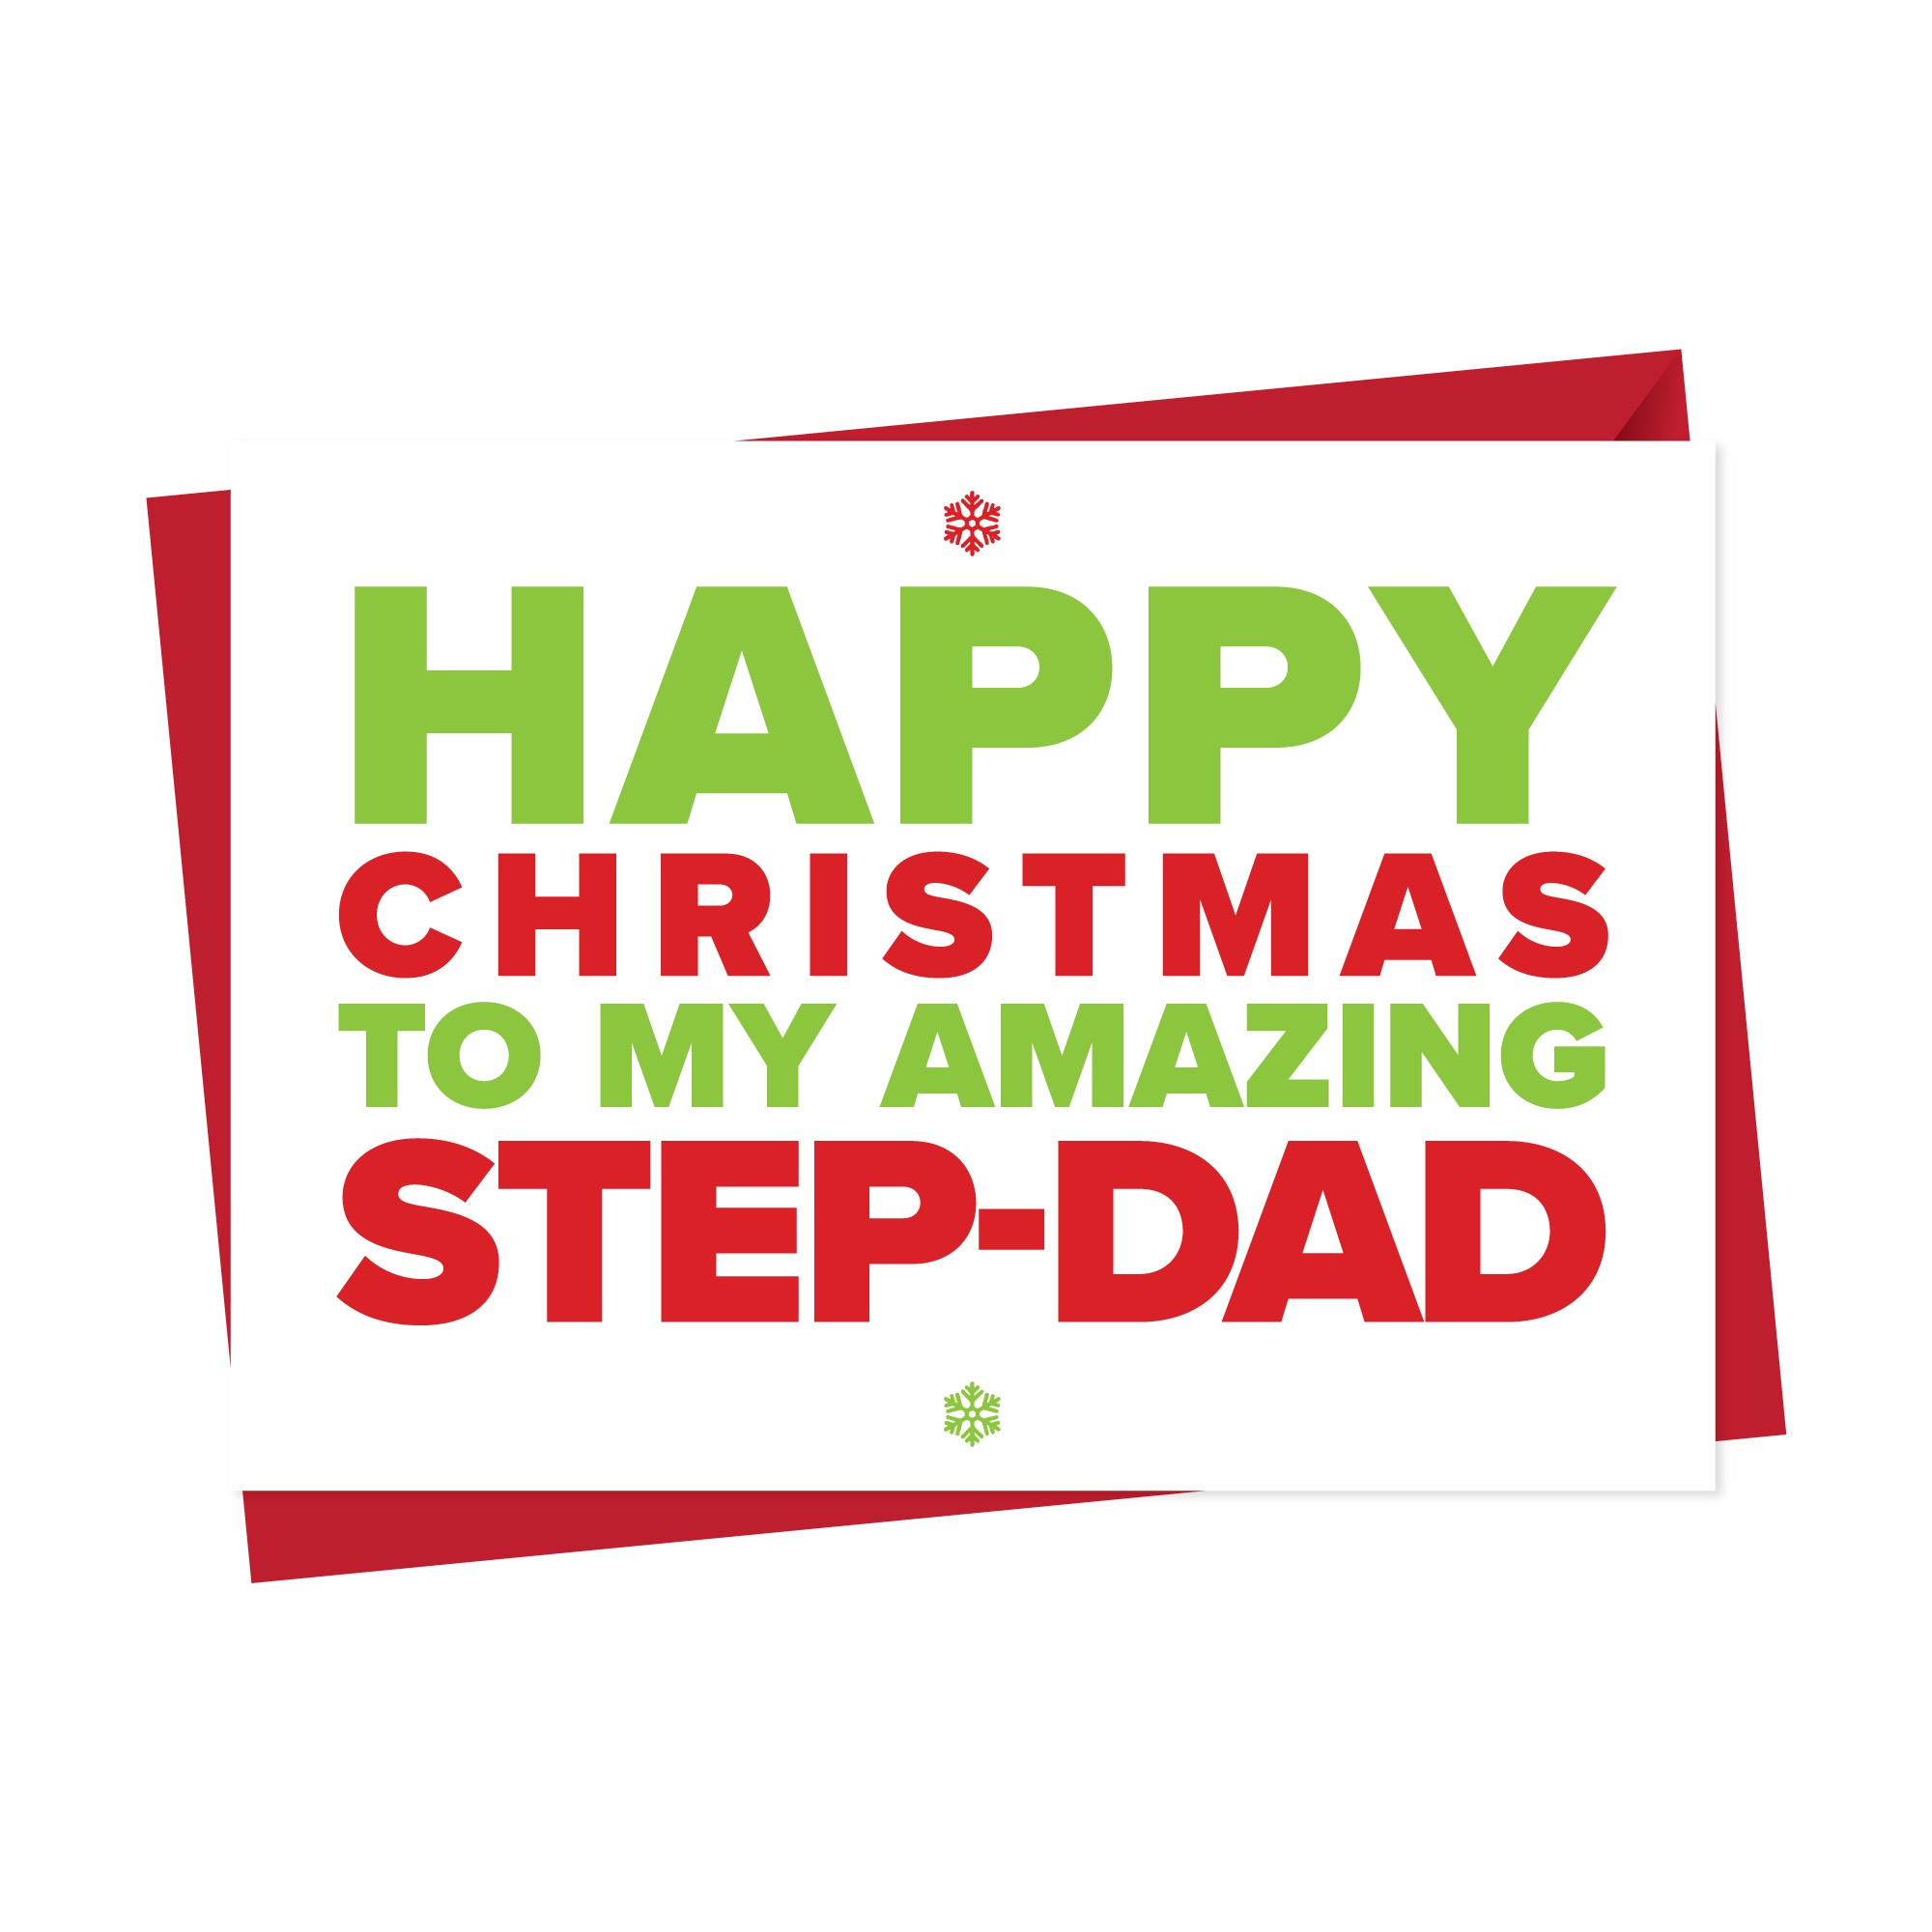 Christmas Card for An Amazing Step-Dad